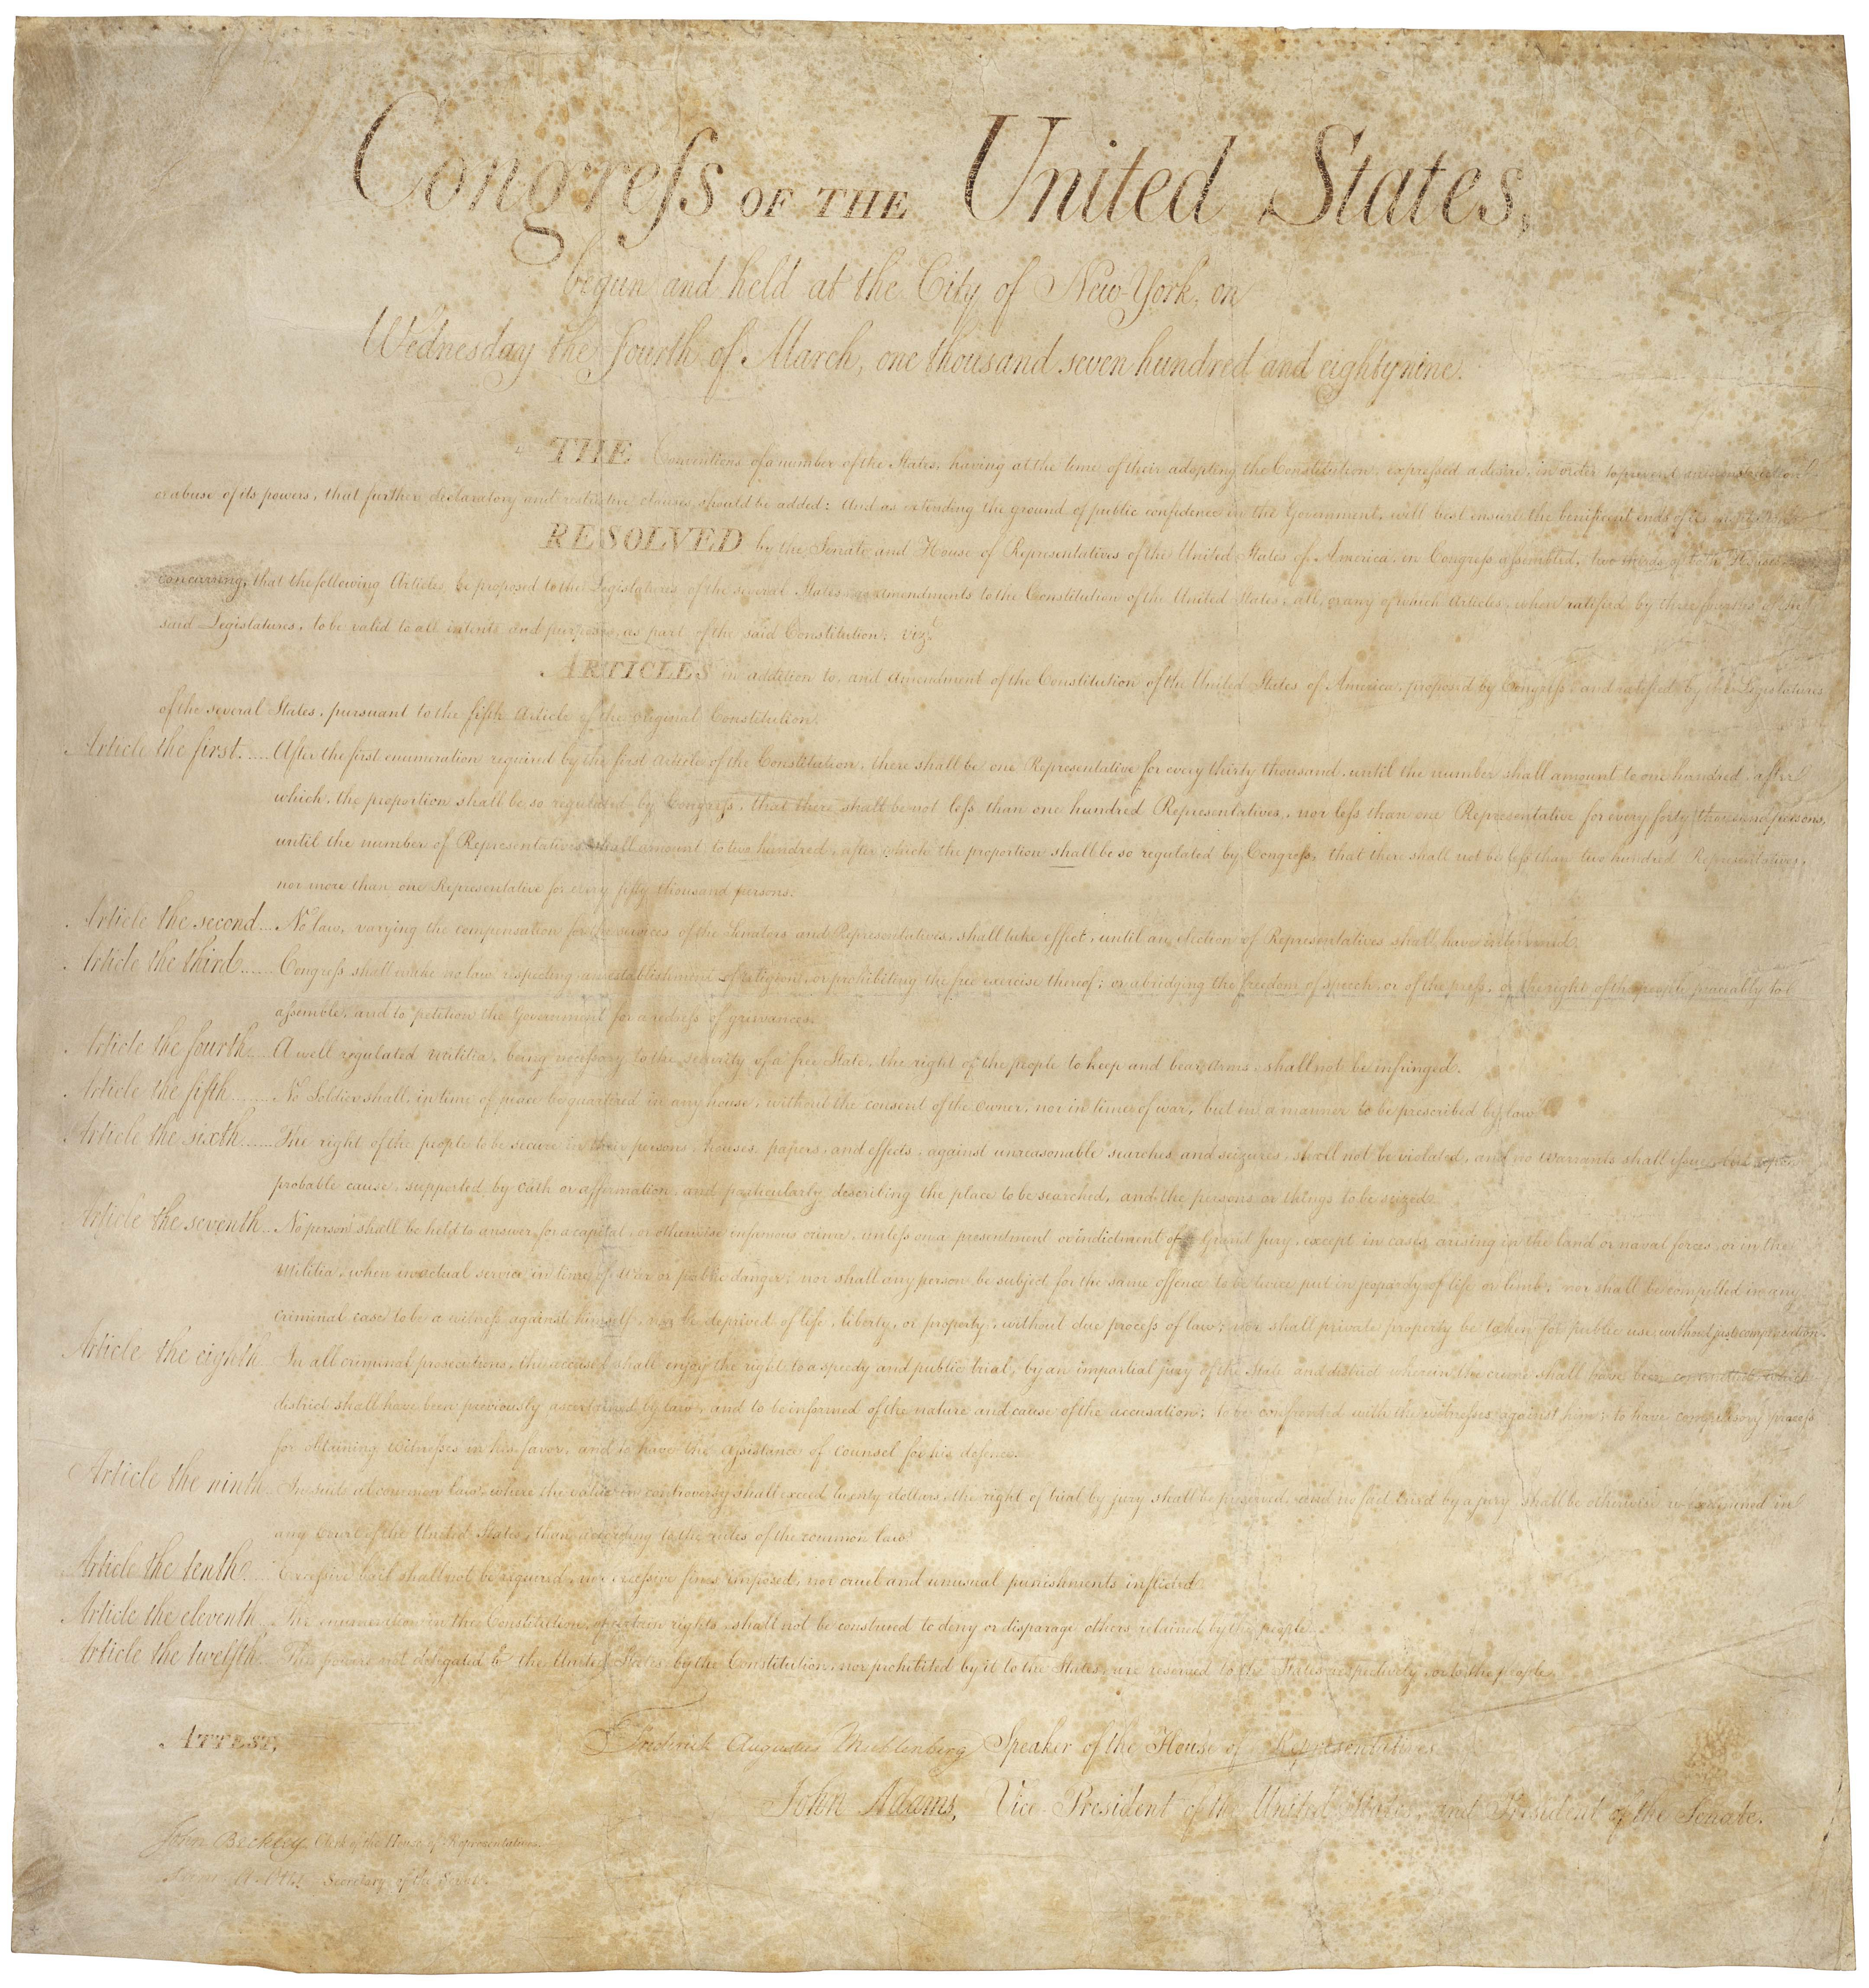 http://upload.wikimedia.org/wikipedia/commons/7/79/Bill_of_Rights_Pg1of1_AC.jpg